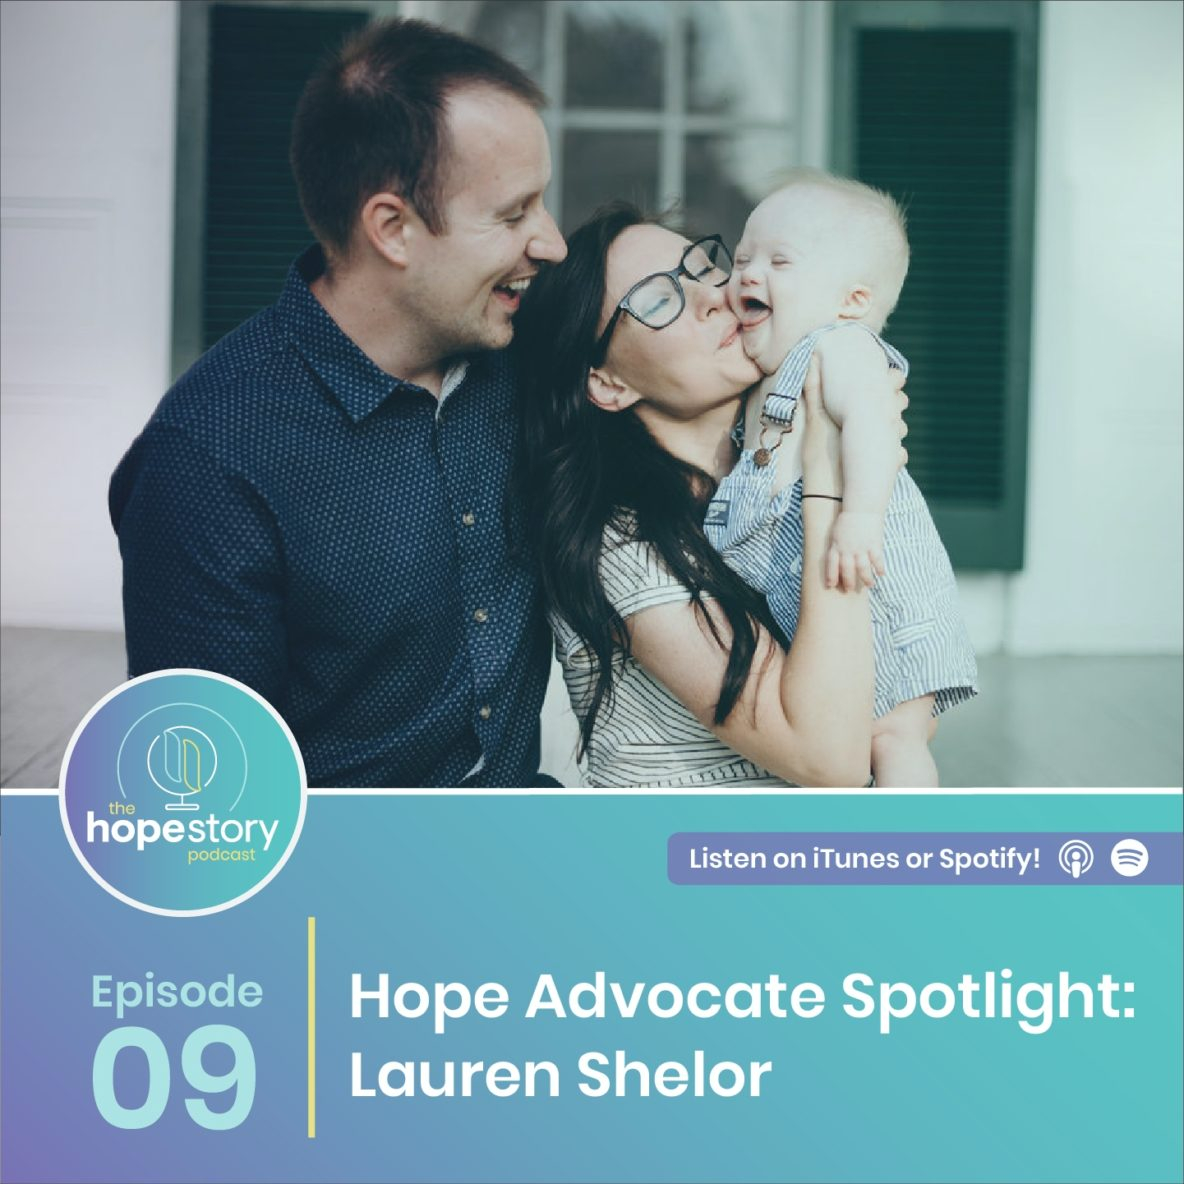 Lauren shelor hope story podcast down syndrome